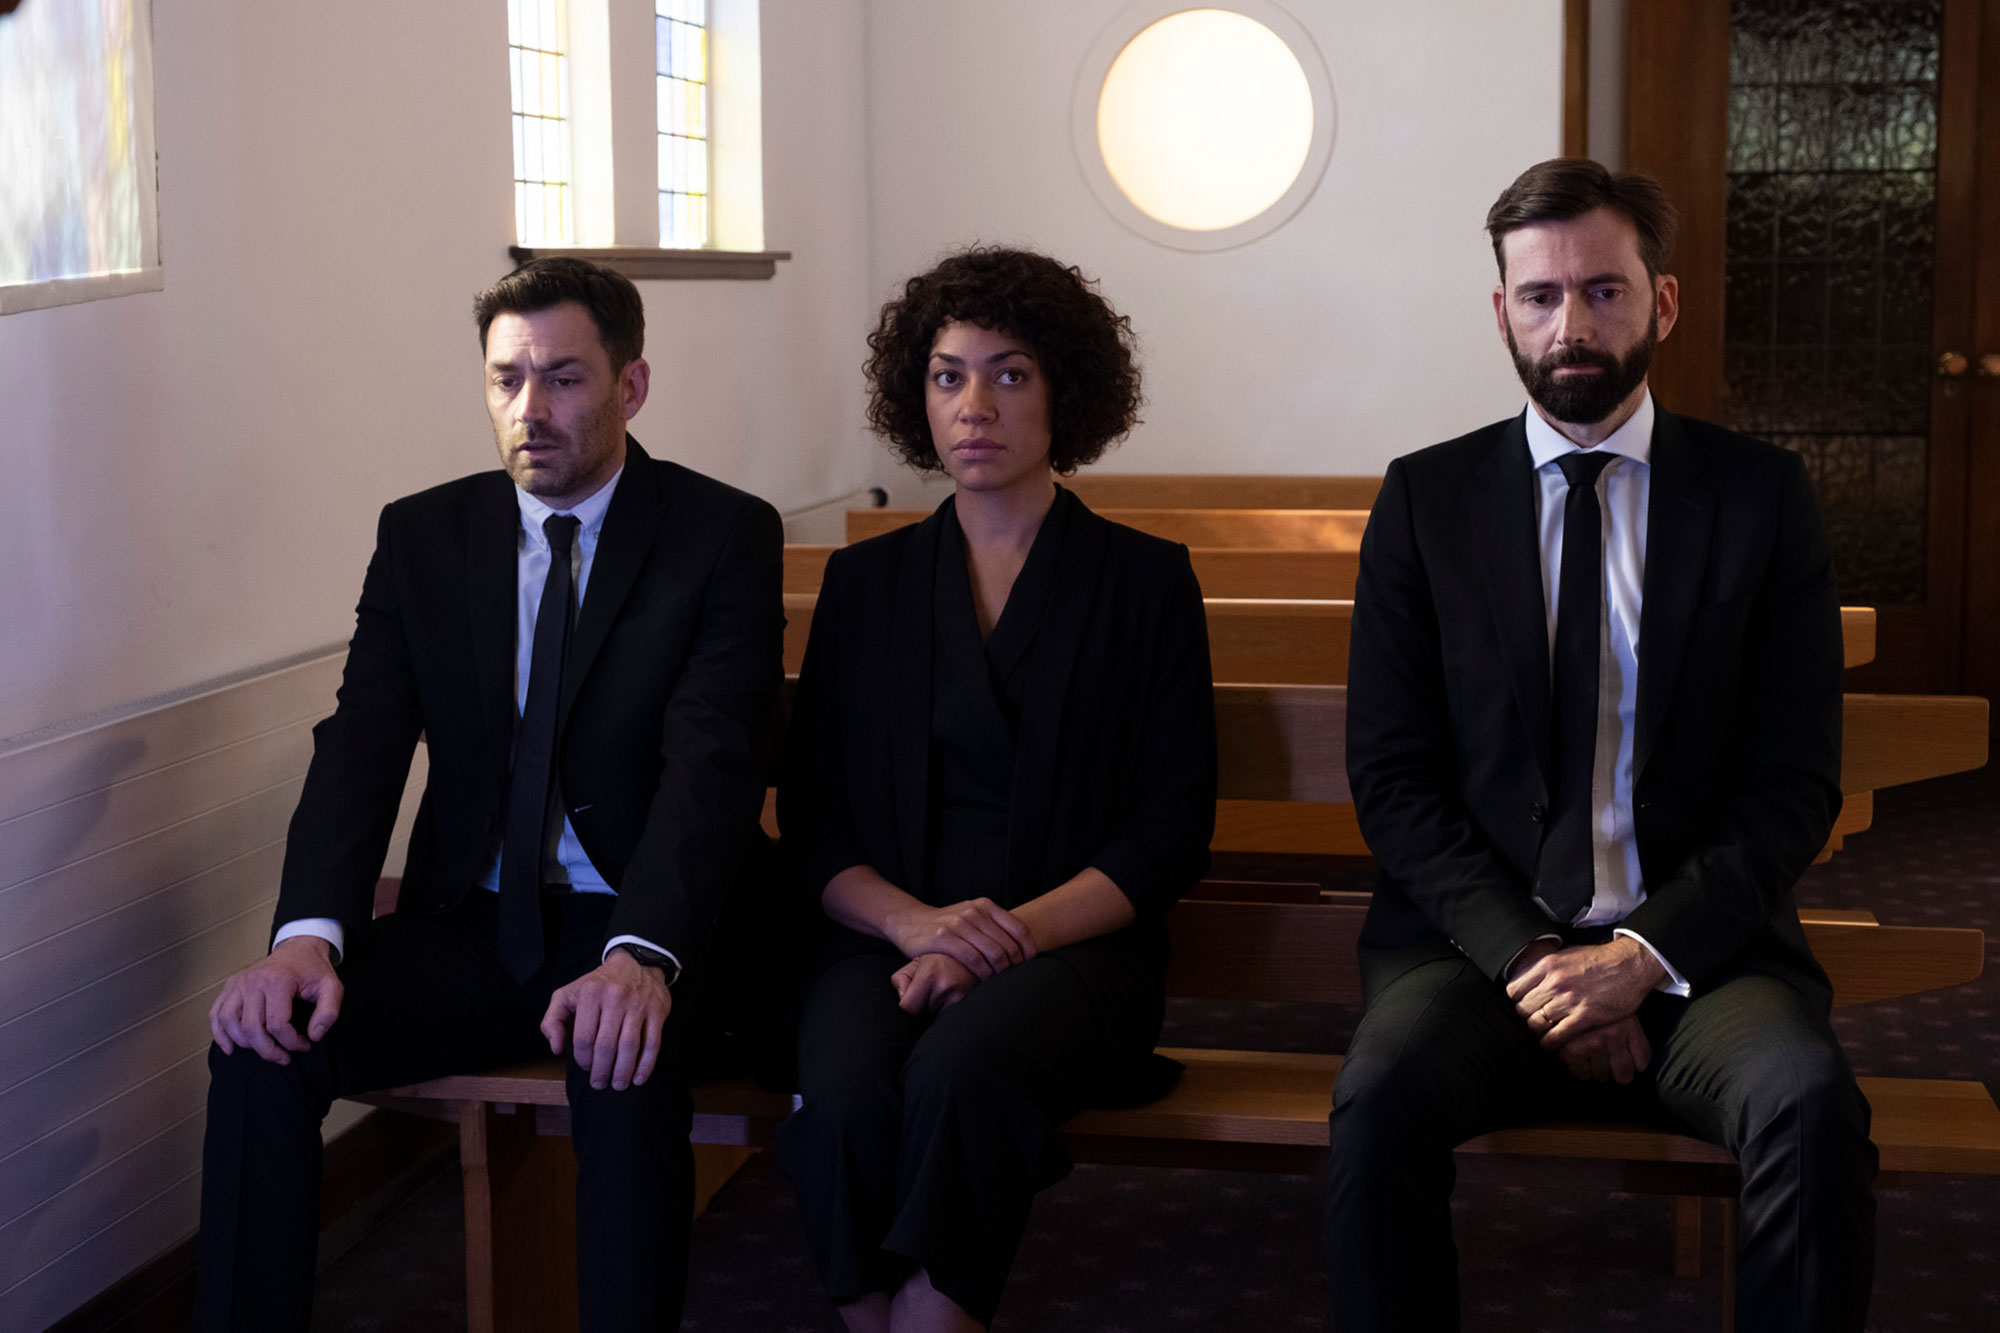 Deadwater Fell trailer: David Tennant, Cush Jumbo star in AcornTV drama |  EW.com